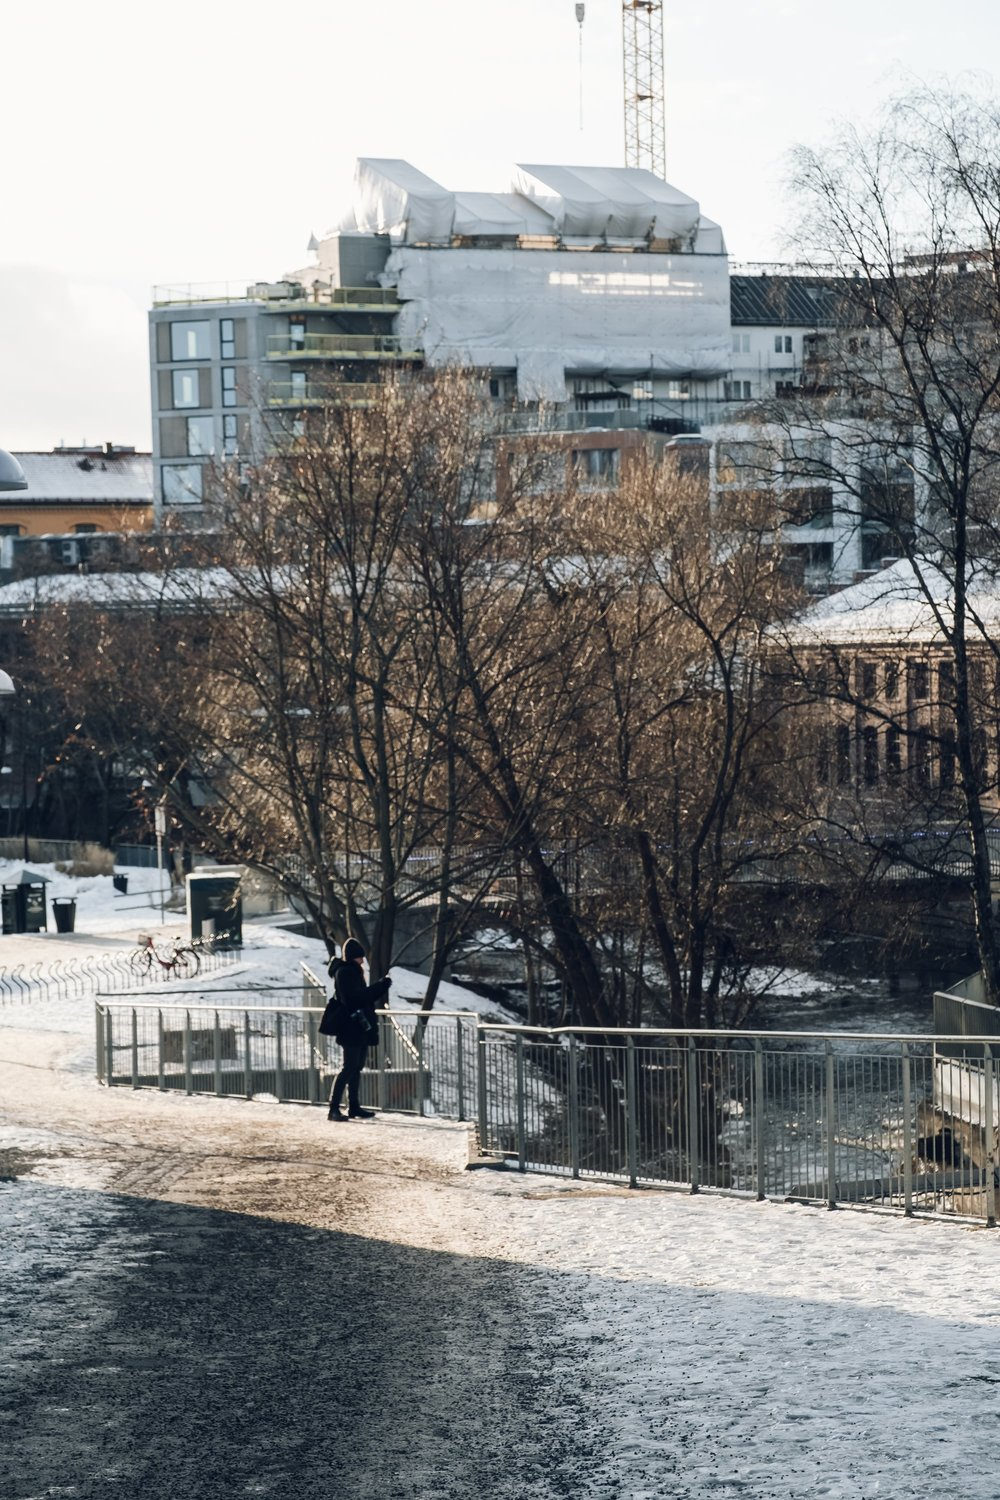 Walking the Akerselva River in Oslo by Haarkon